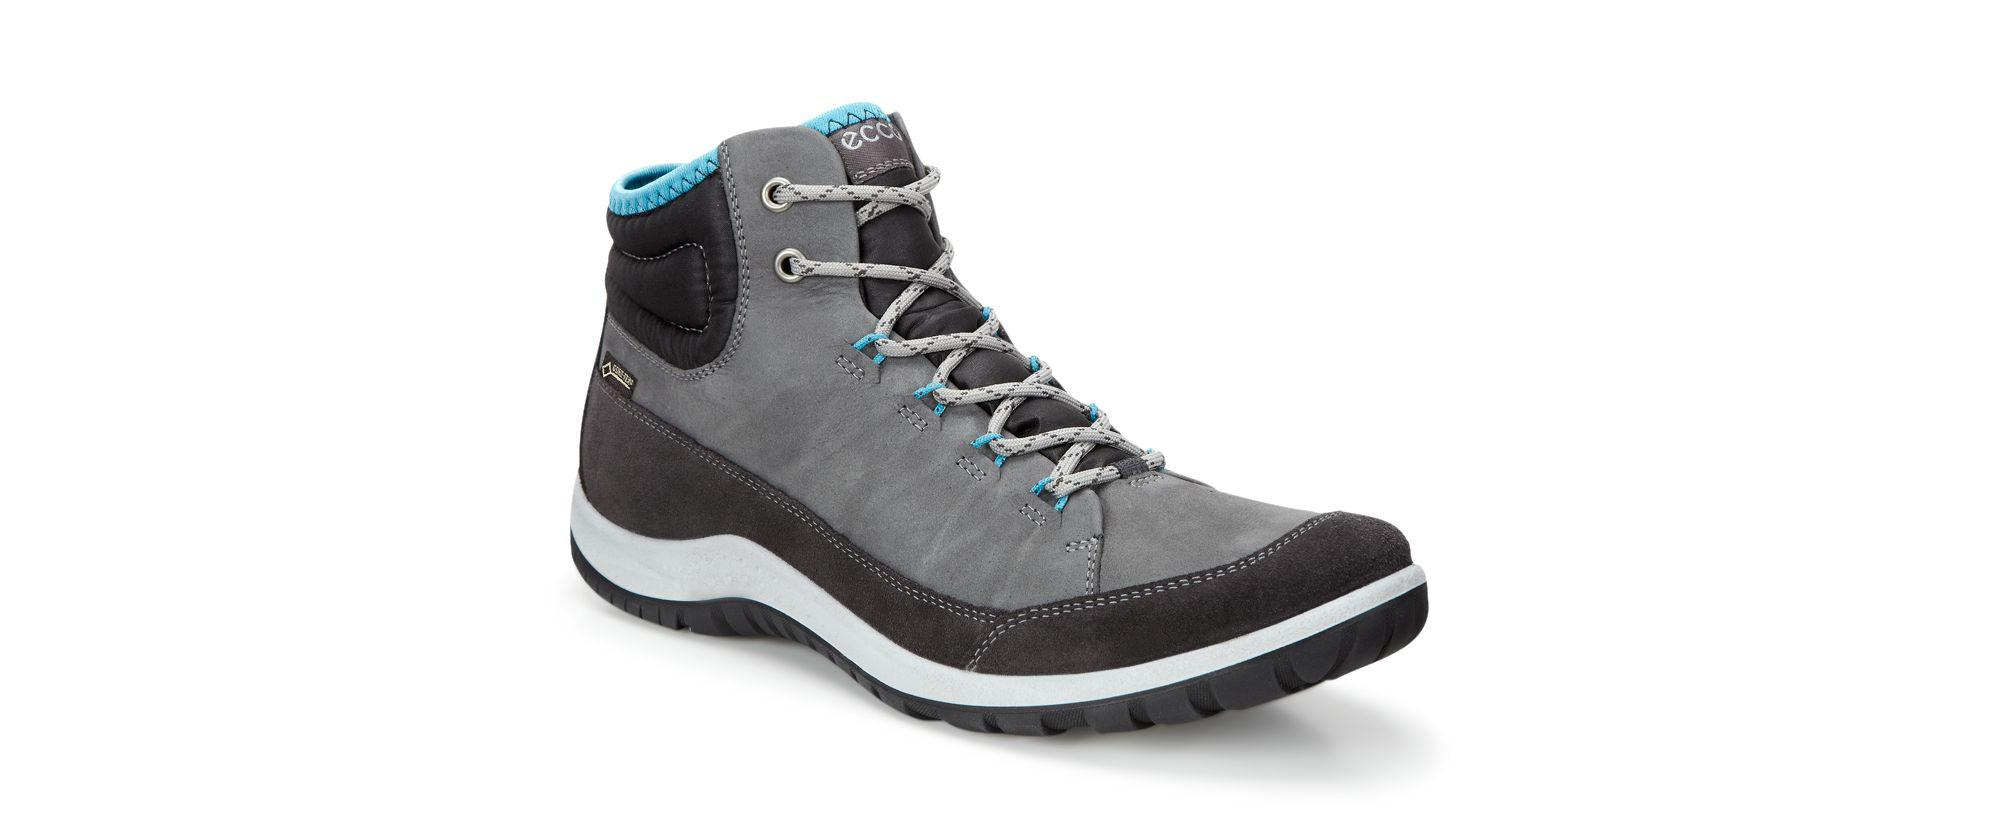 Grey aspina outdoor ankle boots factory outlet for sale brand new unisex for sale Dbc15zby